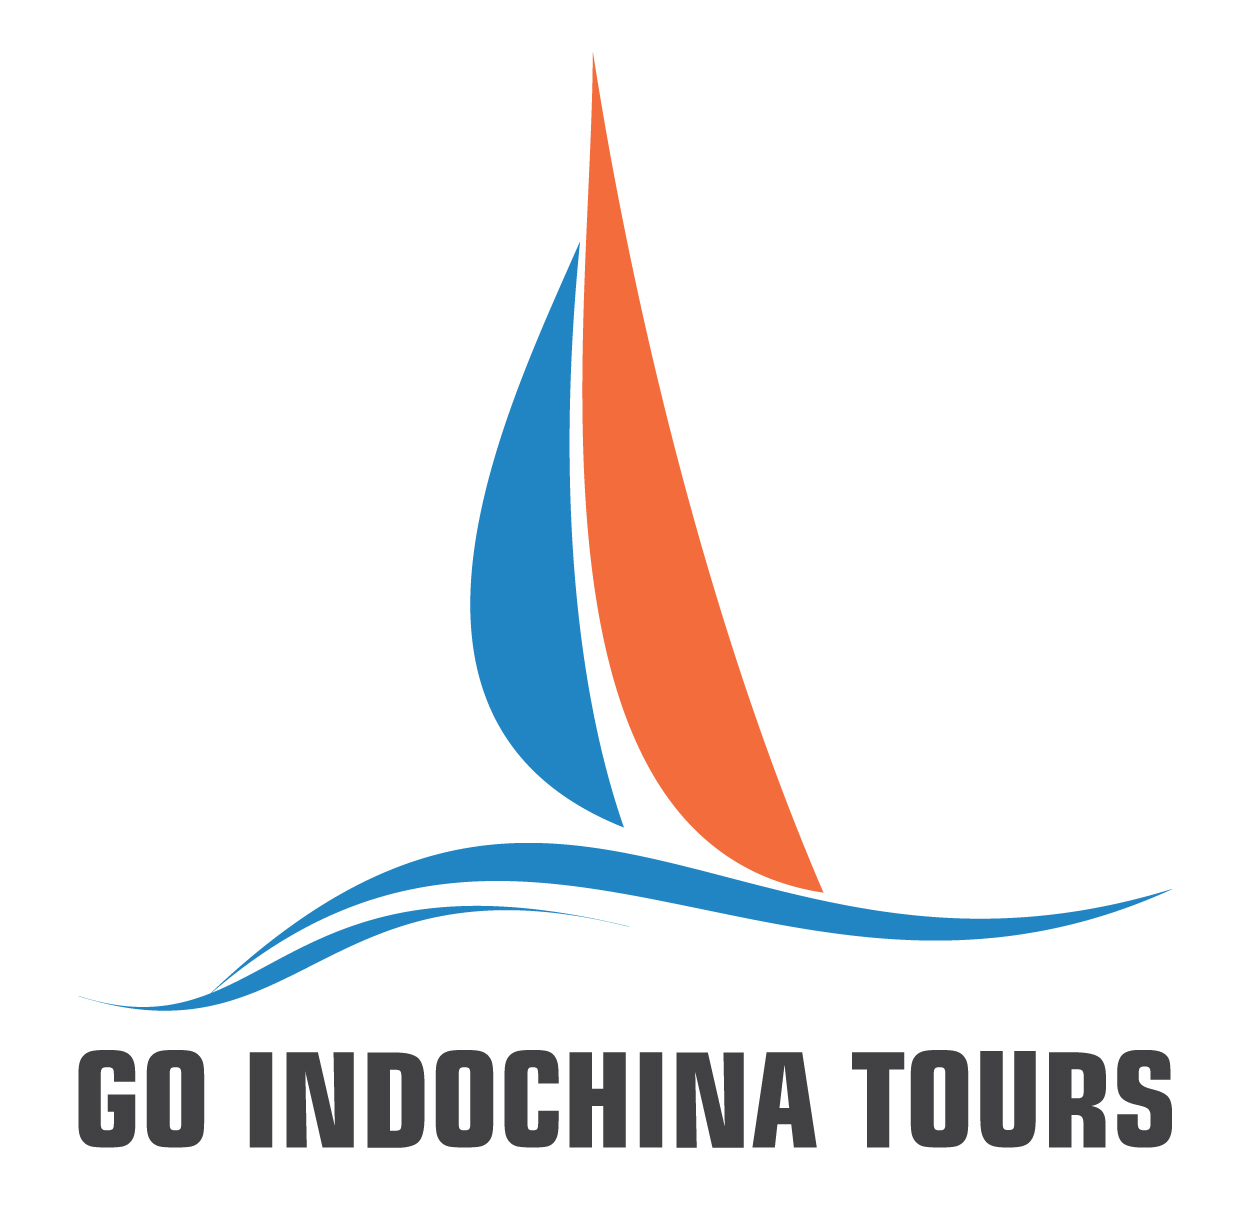 Go Indochina Tours - Vietnam Travel Company - Travel Agency